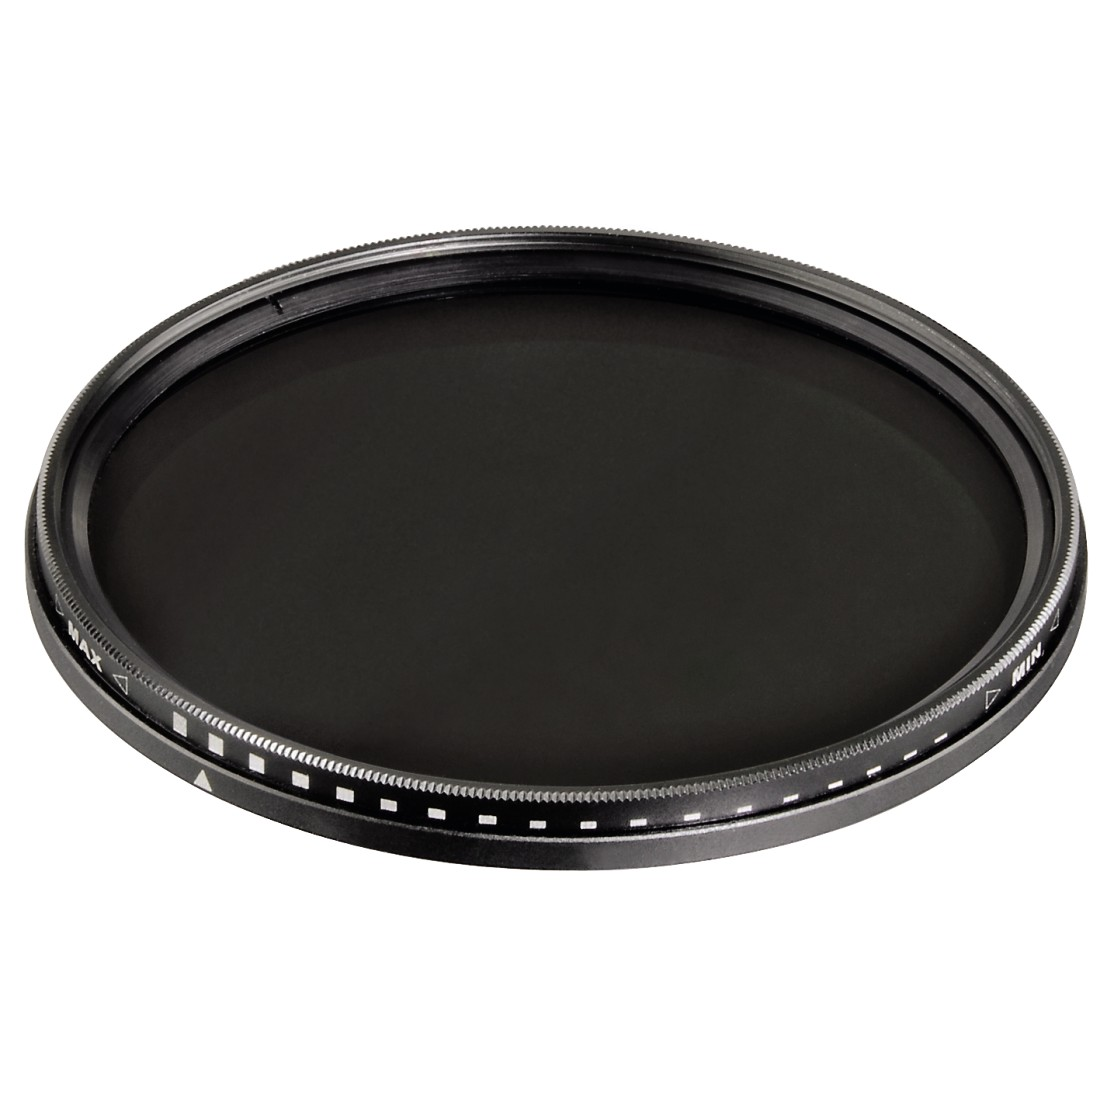 abx High-Res Image - Hama, Vario ND2-400 Neutral-Density Filter, coated, 77.0 mm